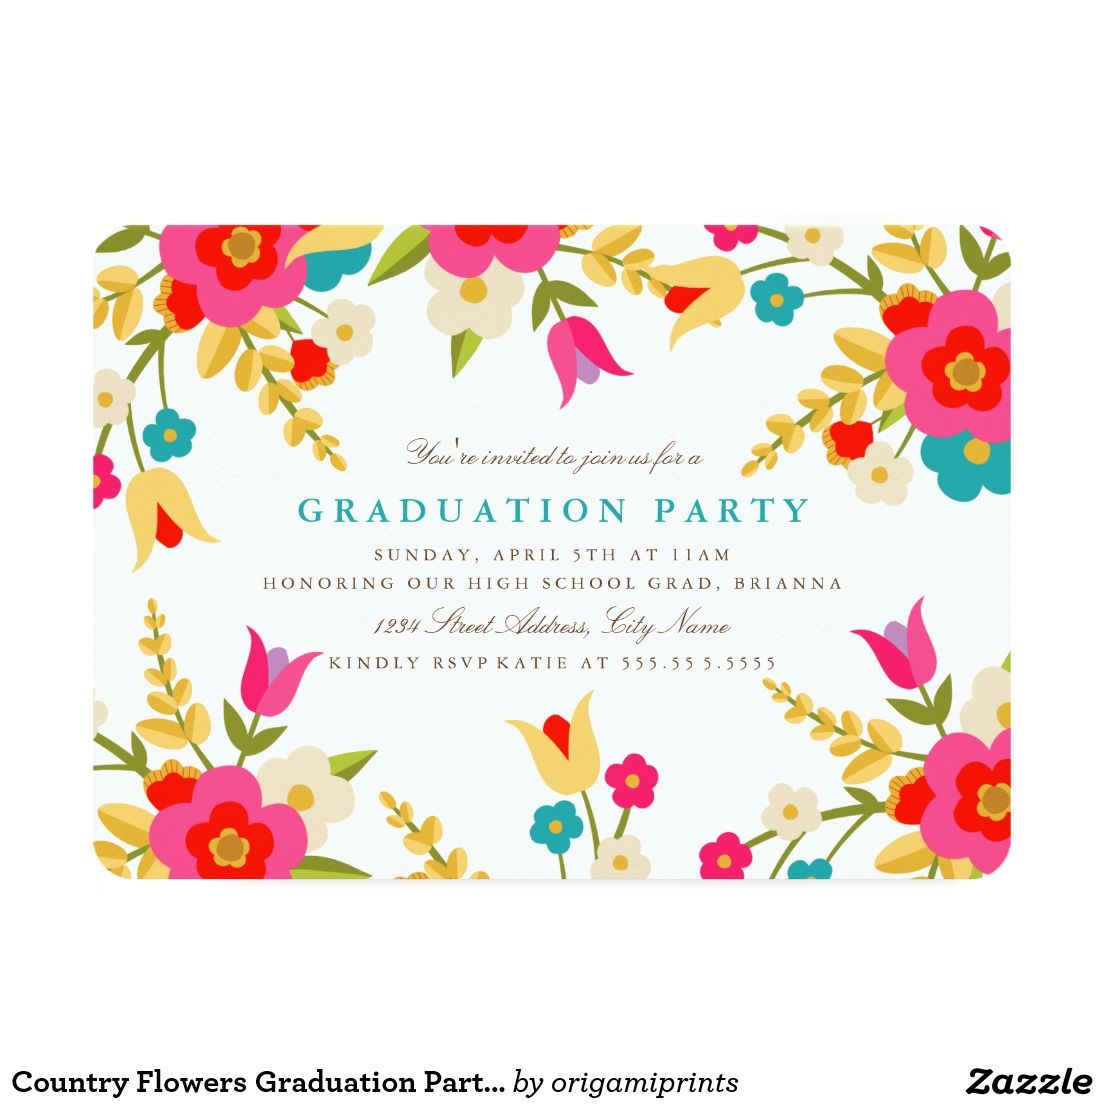 Country Flowers Graduation Party Invite   Party Time! Excellent ...